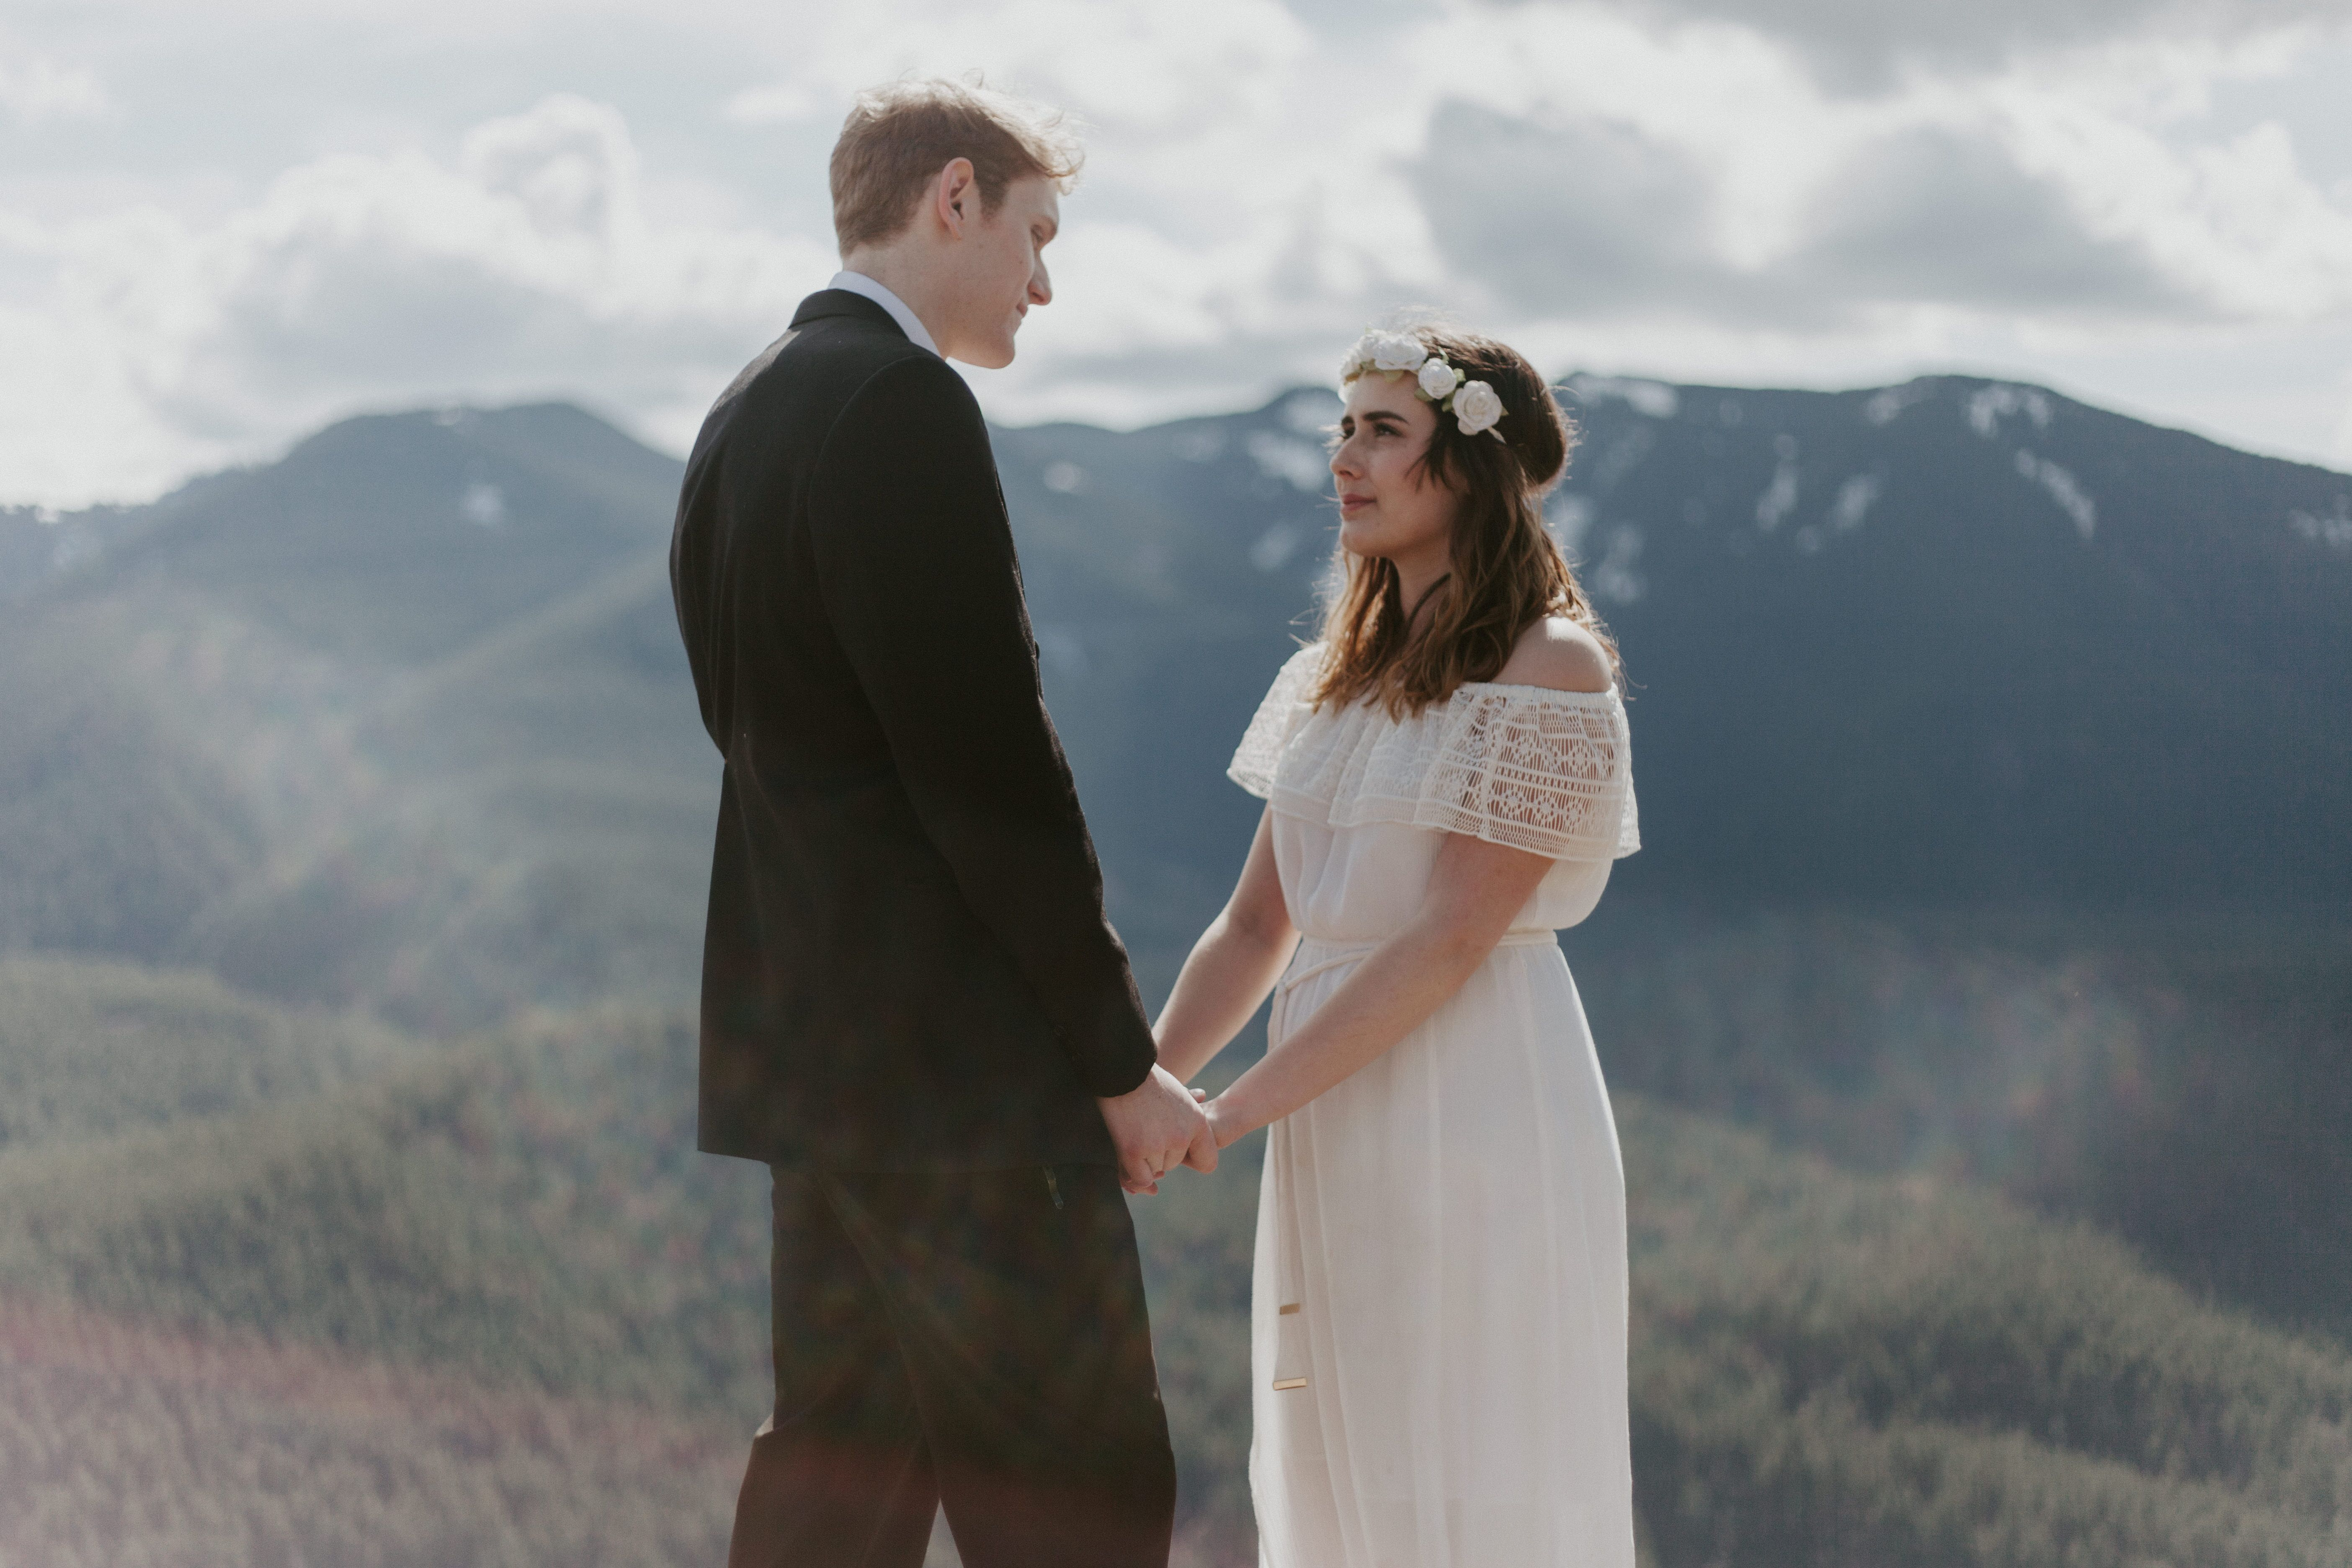 Michael and Winnifred hold hands with a view of Washington state in the background. Elopement adventure shoot at Rattlesnake Ledge, Washington.